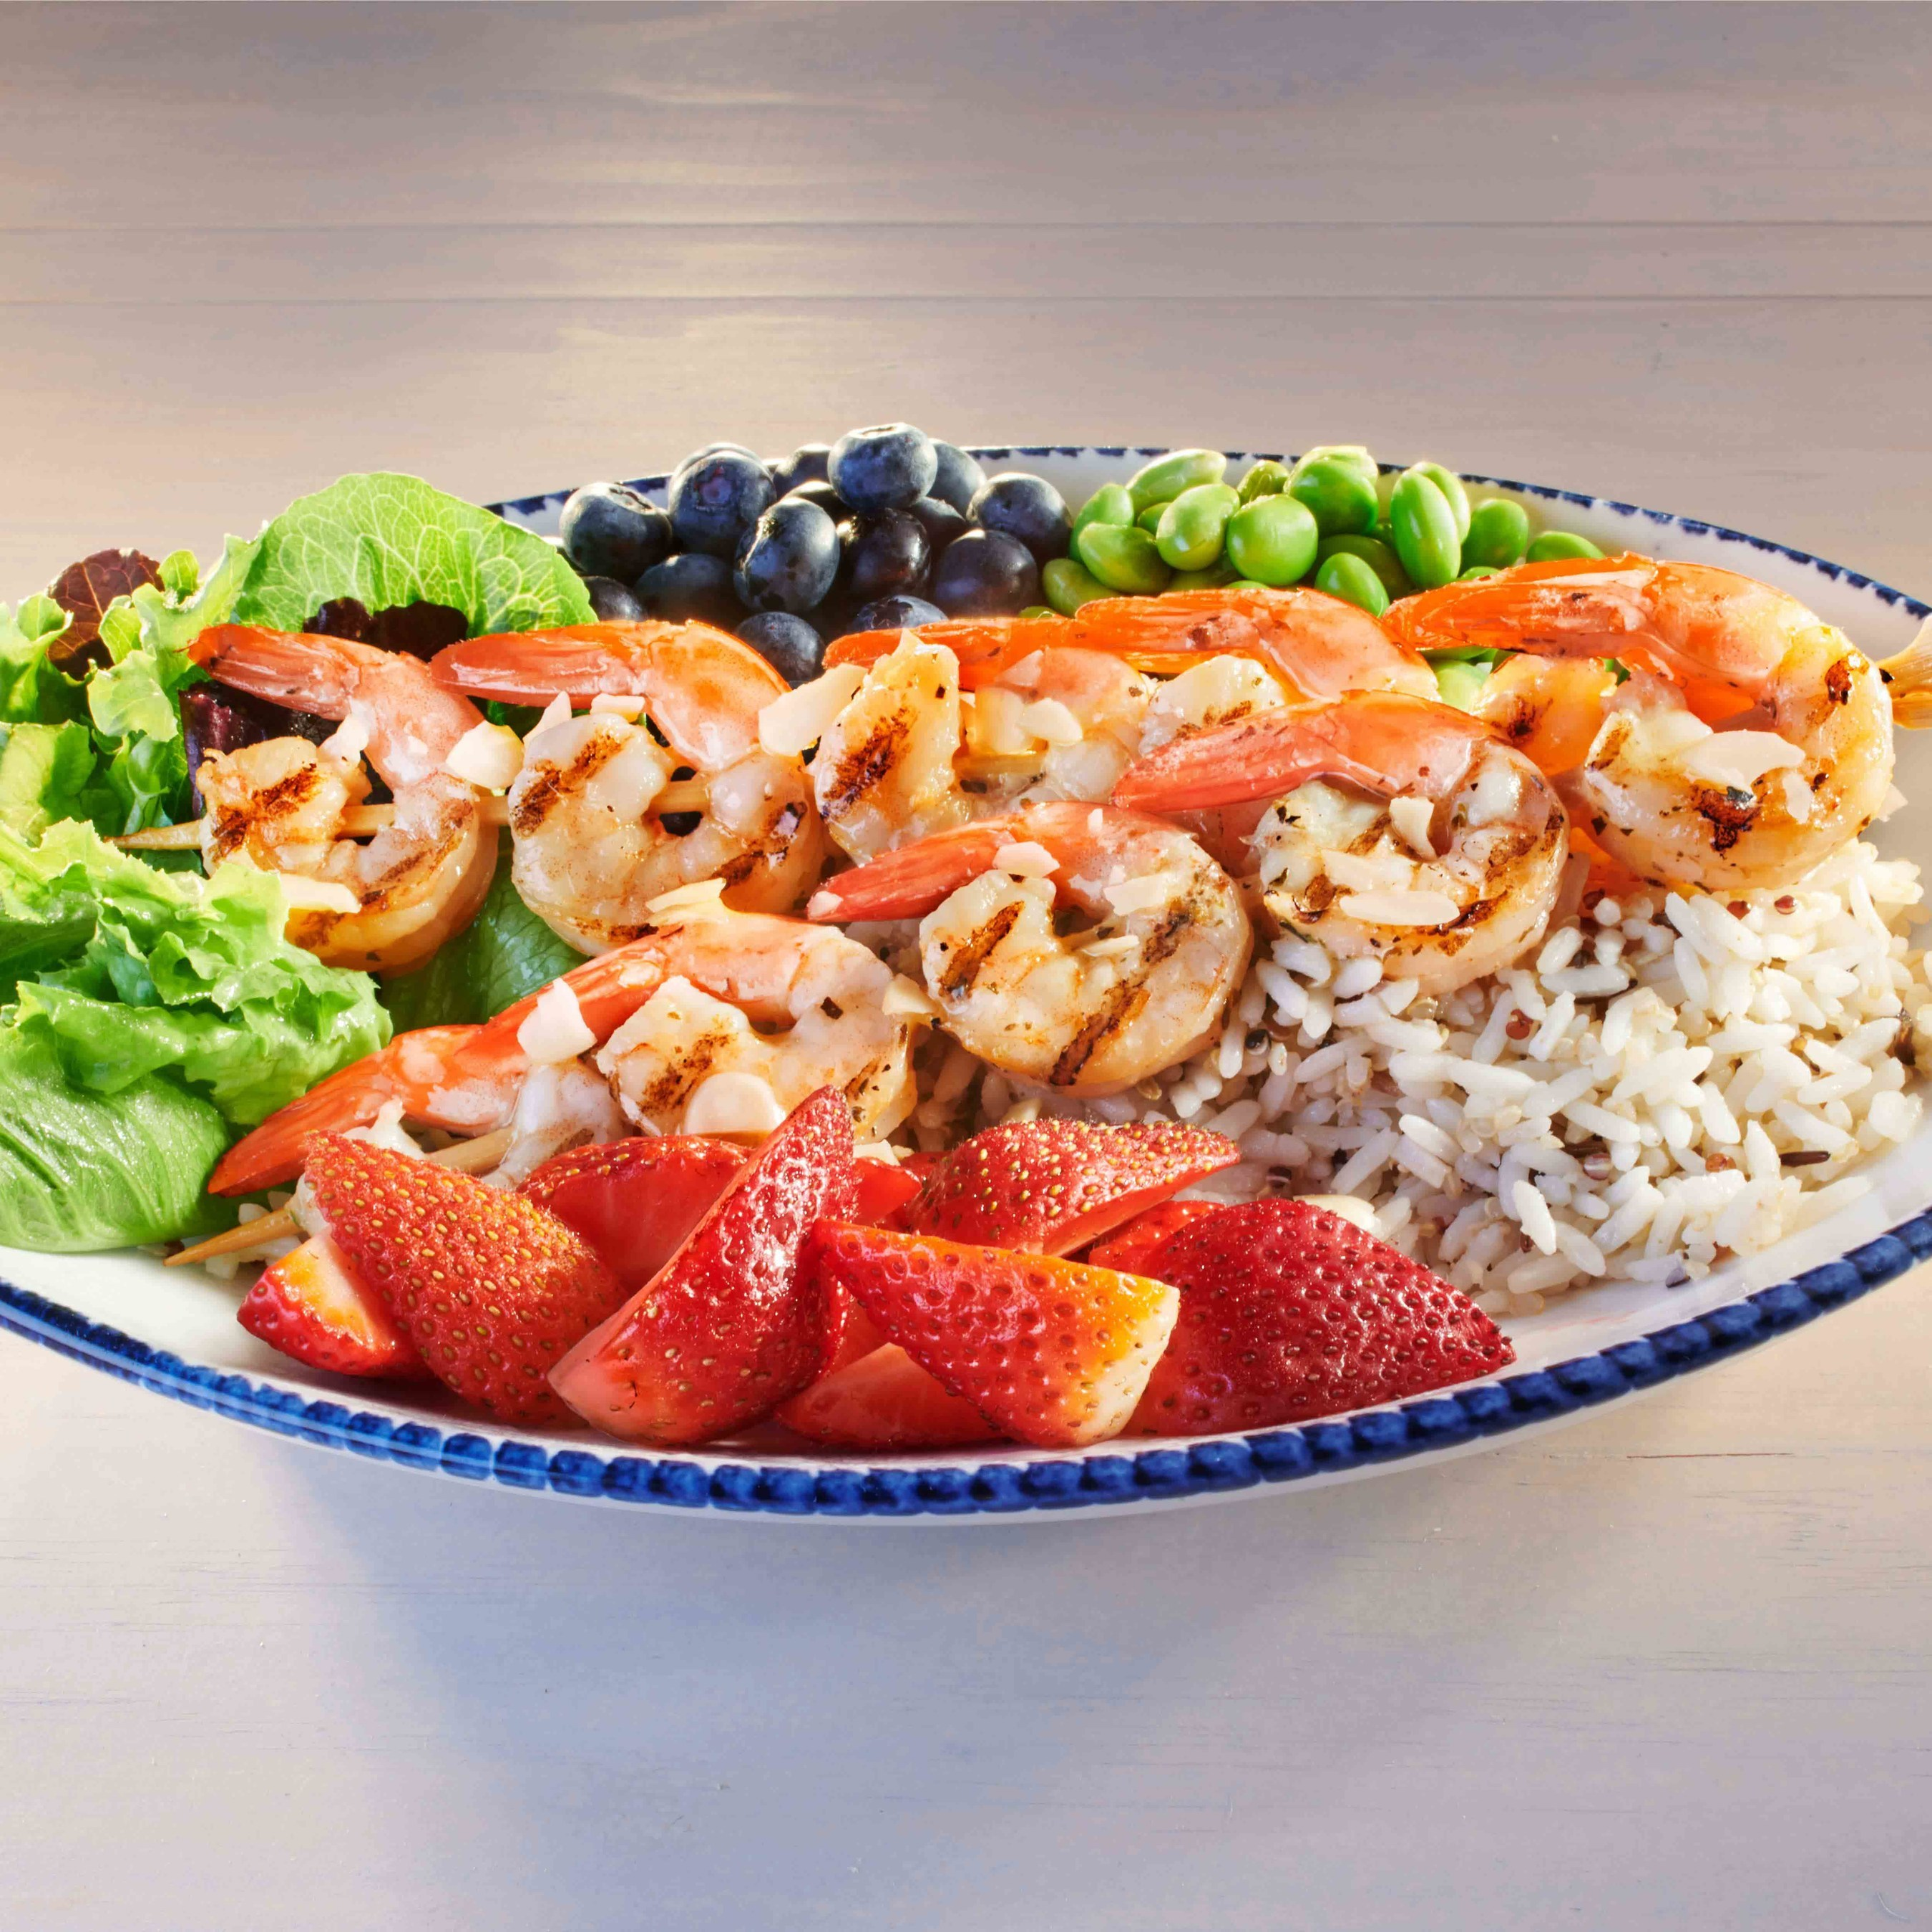 Red Lobster Introduces New Seafood Lover S Lunch Menu Featuring Endless Soup Salad And Biscuits And Power Bowls